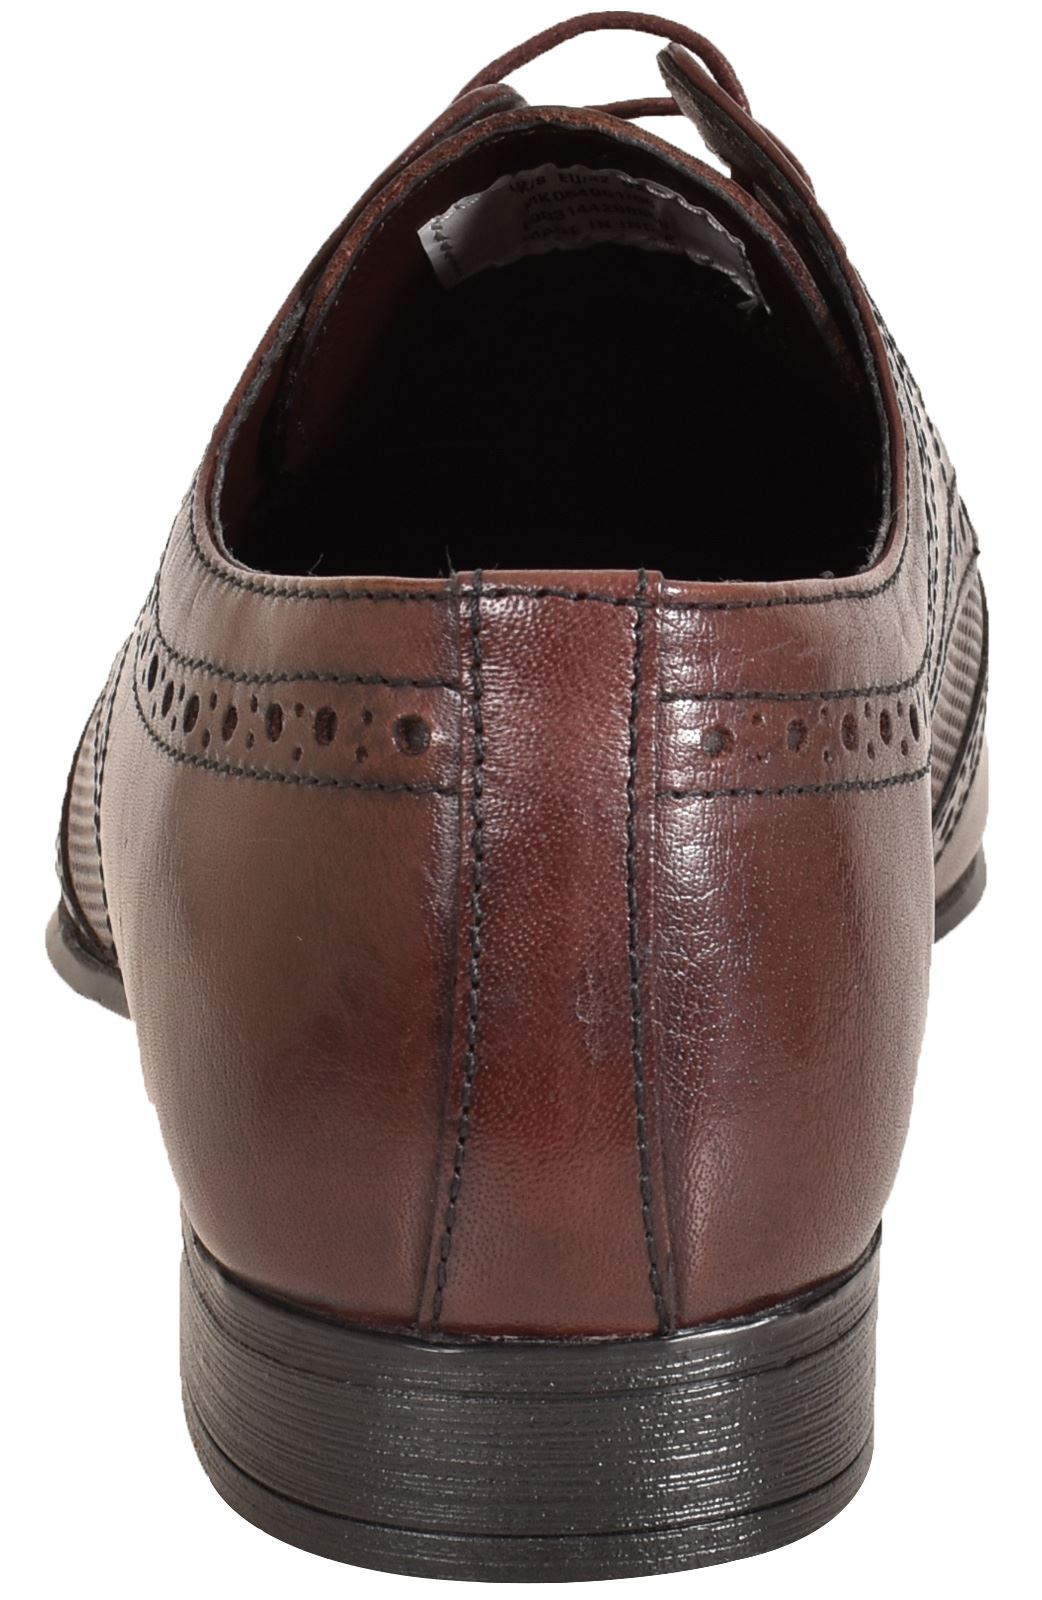 Mens-UK-Style-Leather-Lining-Formal-Office-Wedding-Smart-Work-Brogue-Shoes thumbnail 126